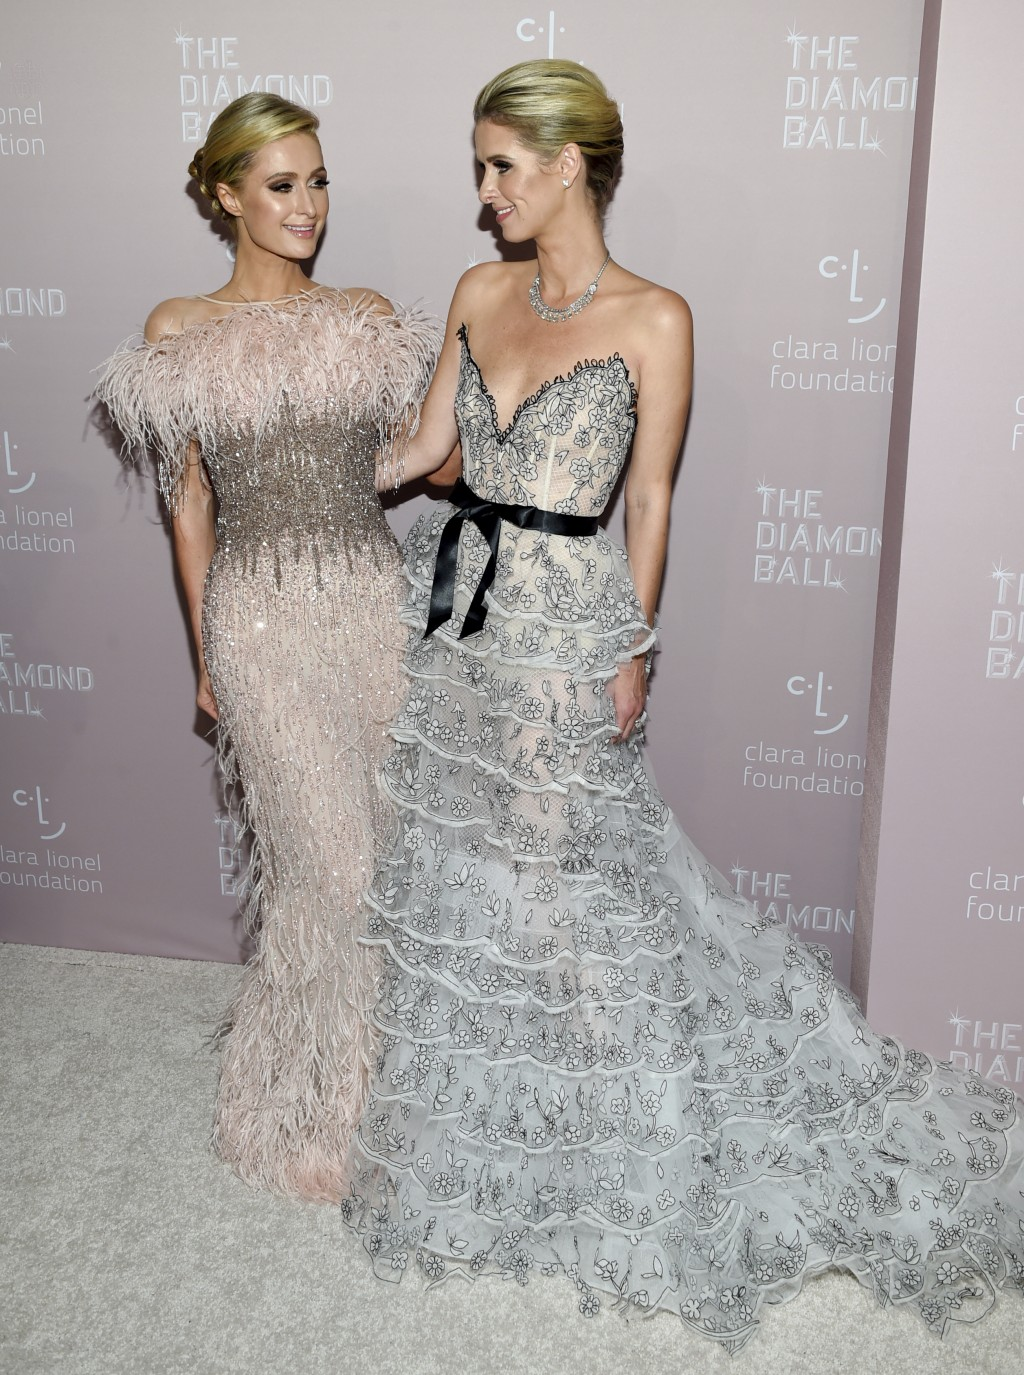 Sisters Paris Hilton, left, and Nicky Hilton Rothschild attend the 4th annual Diamond Ball at Cipriani Wall Street on Thursday, Sept. 13, 2018, in New...